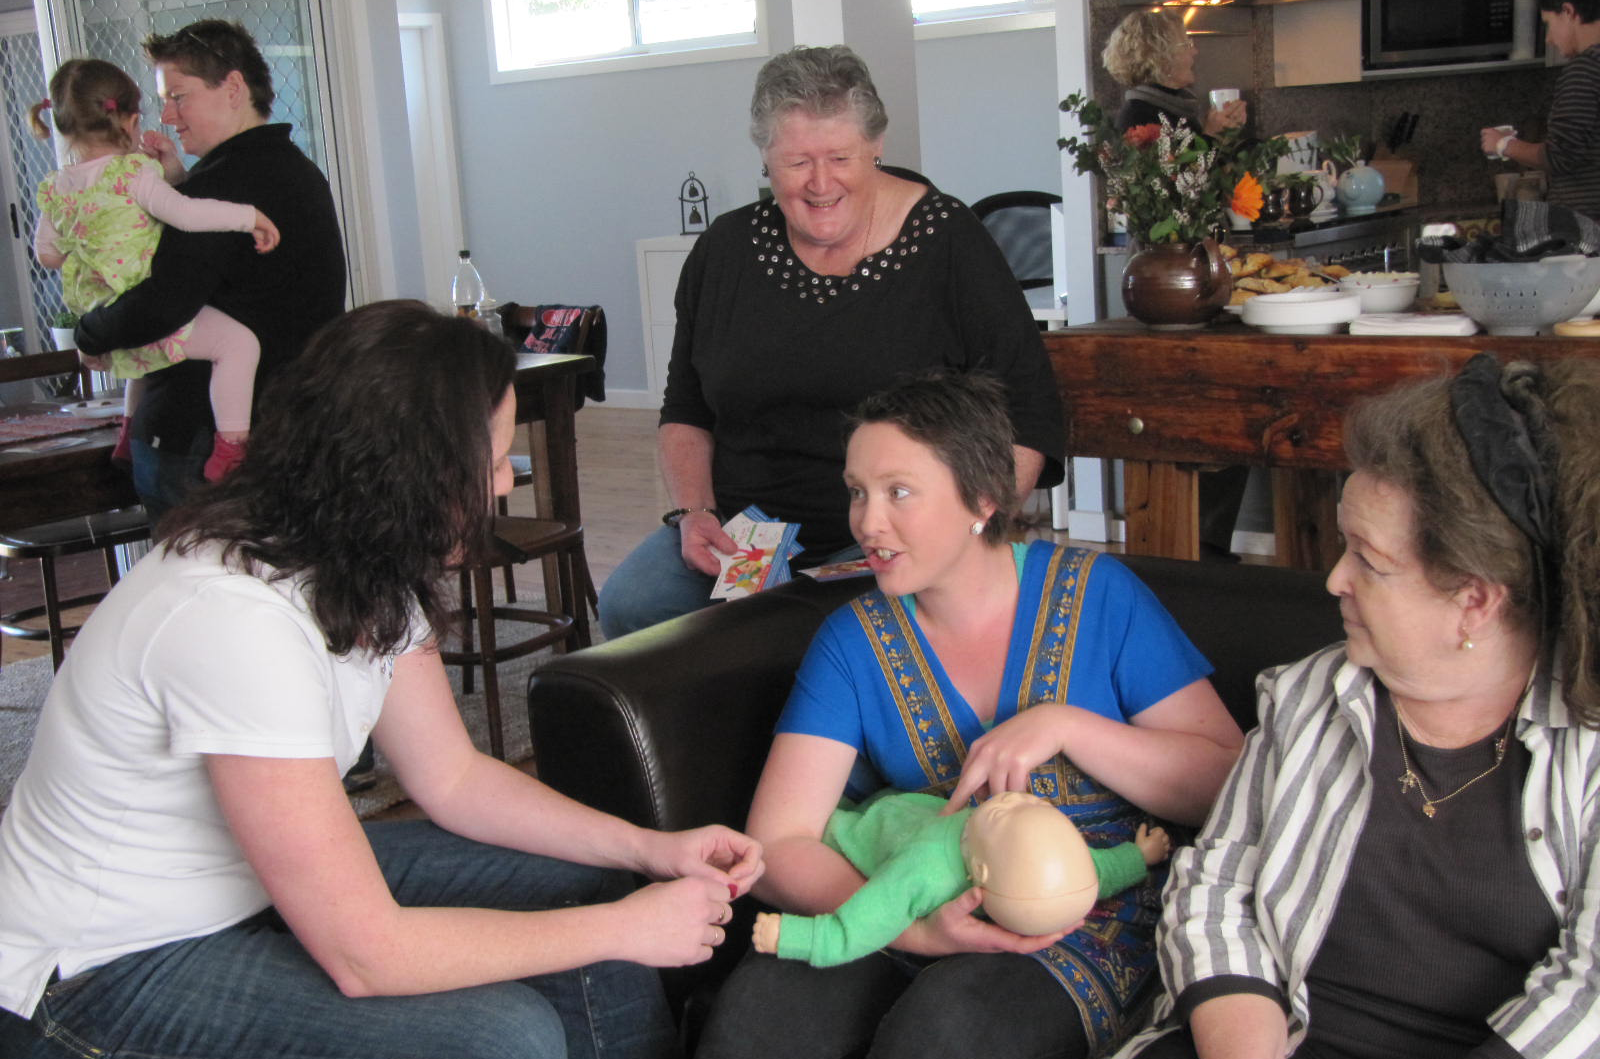 Image of first aid being taught at a baby shower, CPR on a baby